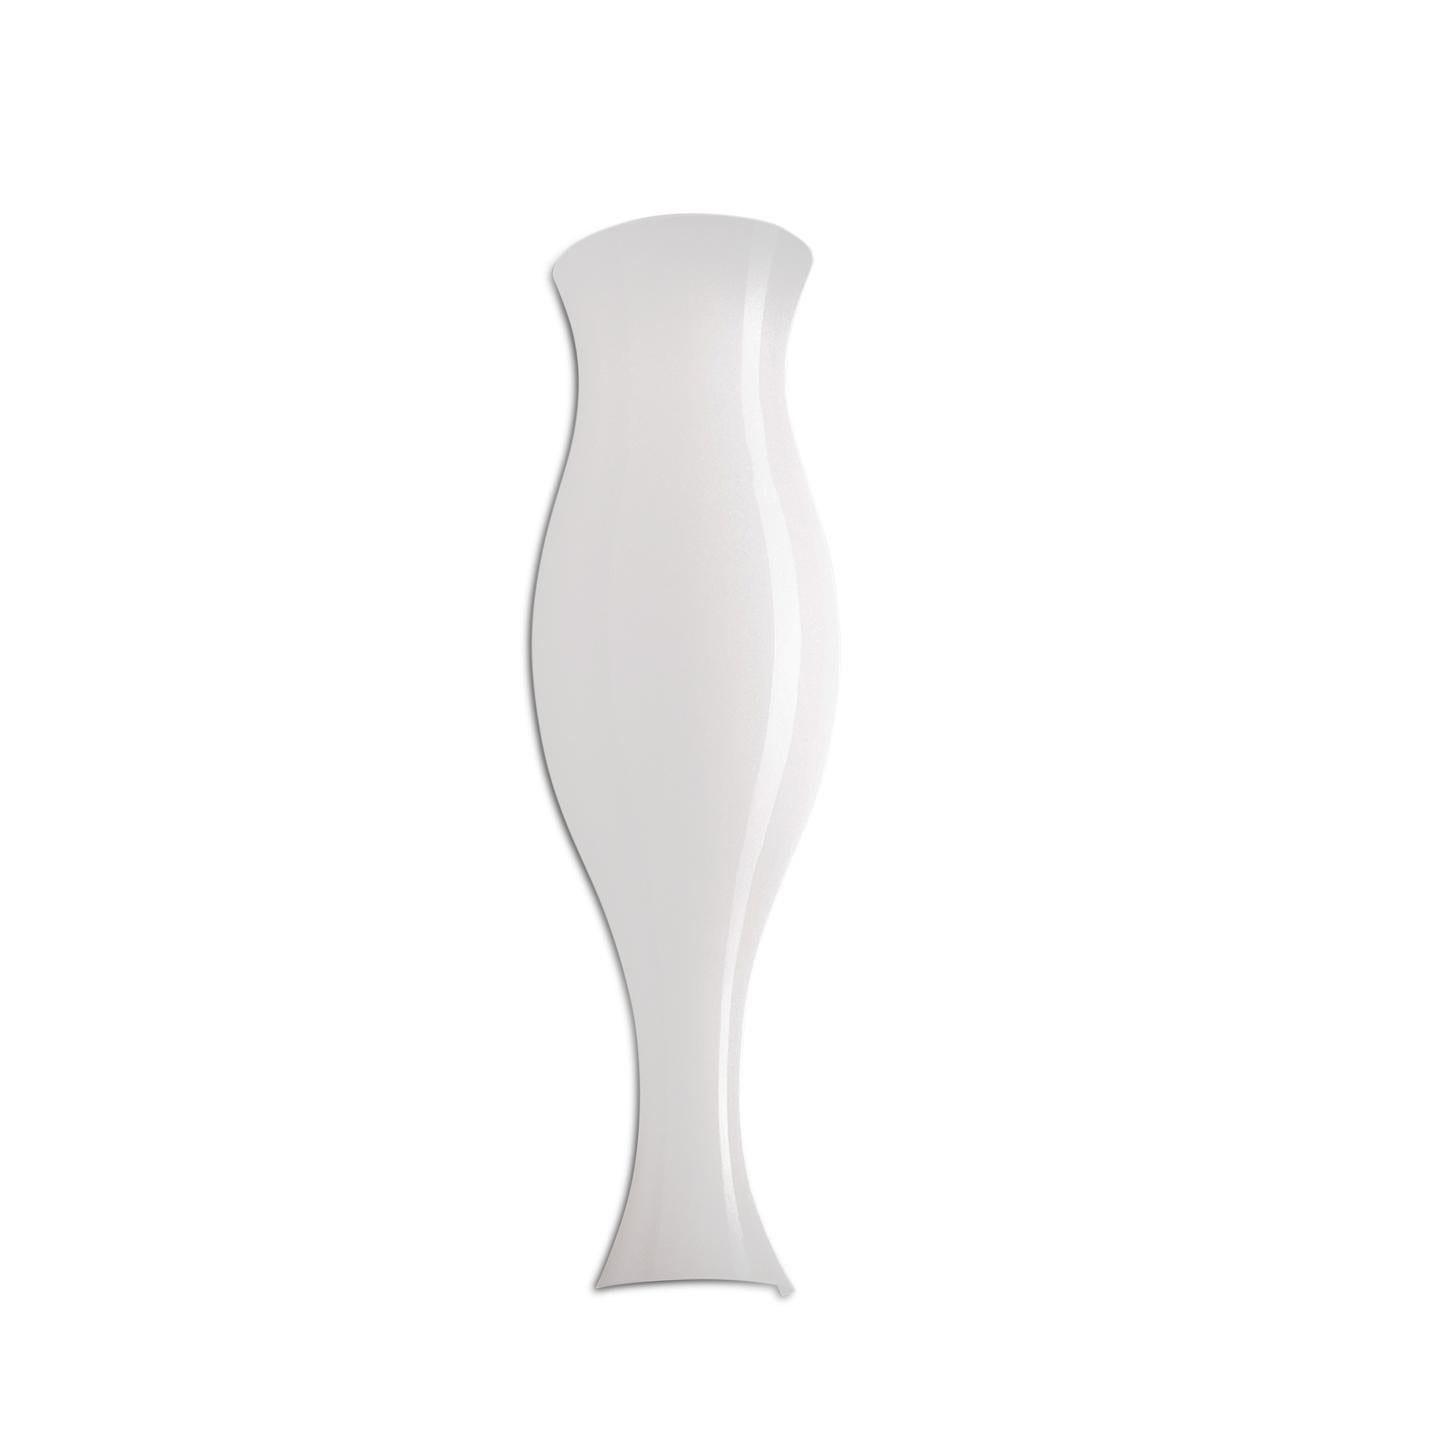 Leucos Spring P Wall Sconce in Glossy White and Matte White by Eva Zeisel